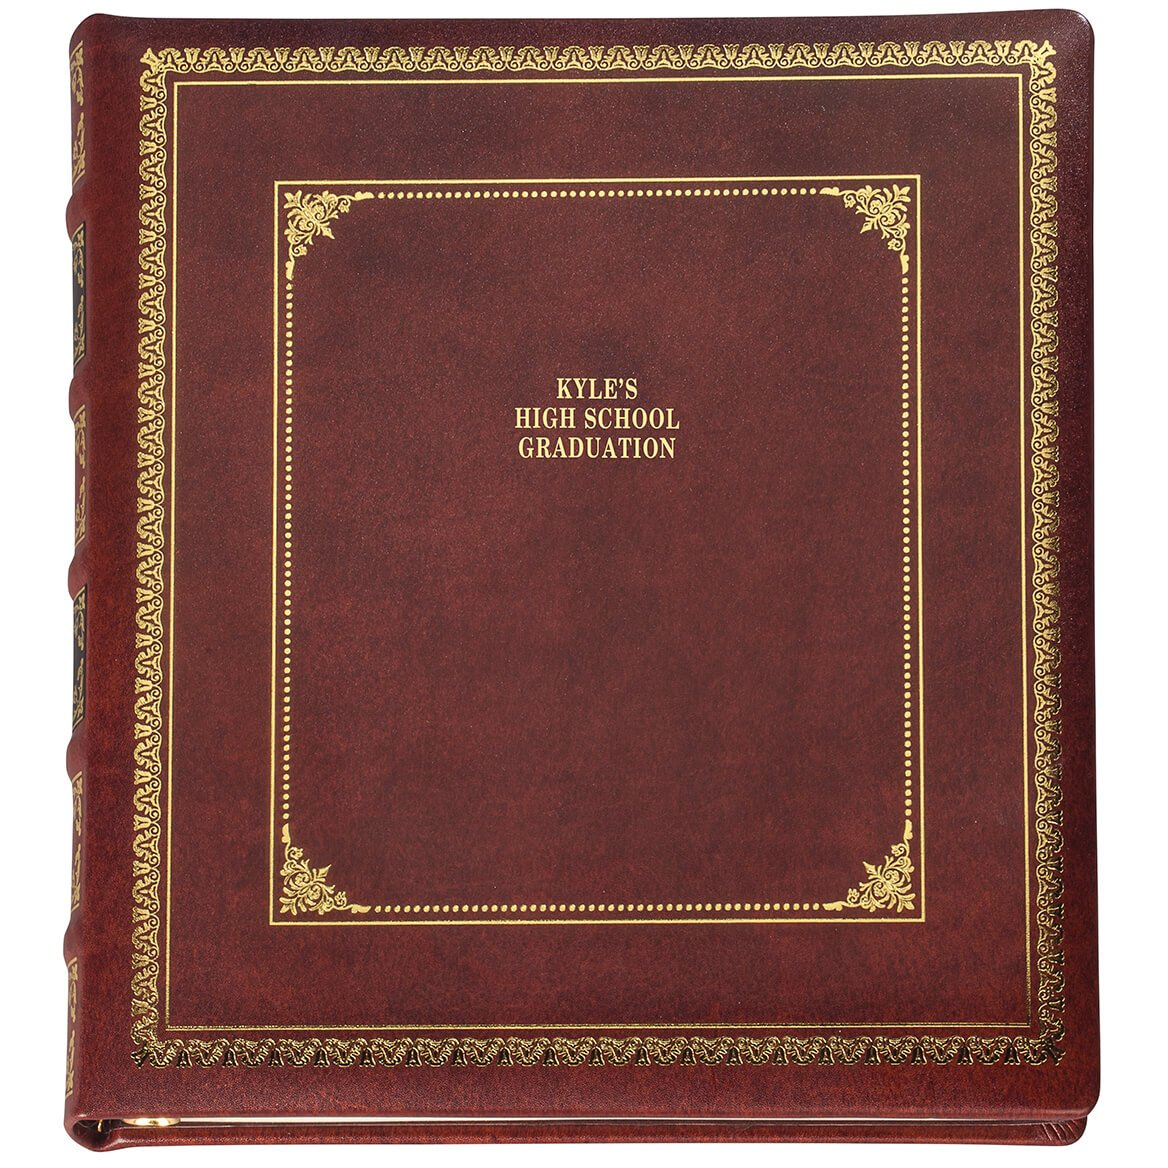 Personalized Library Leather Album - Brown 3 Lines